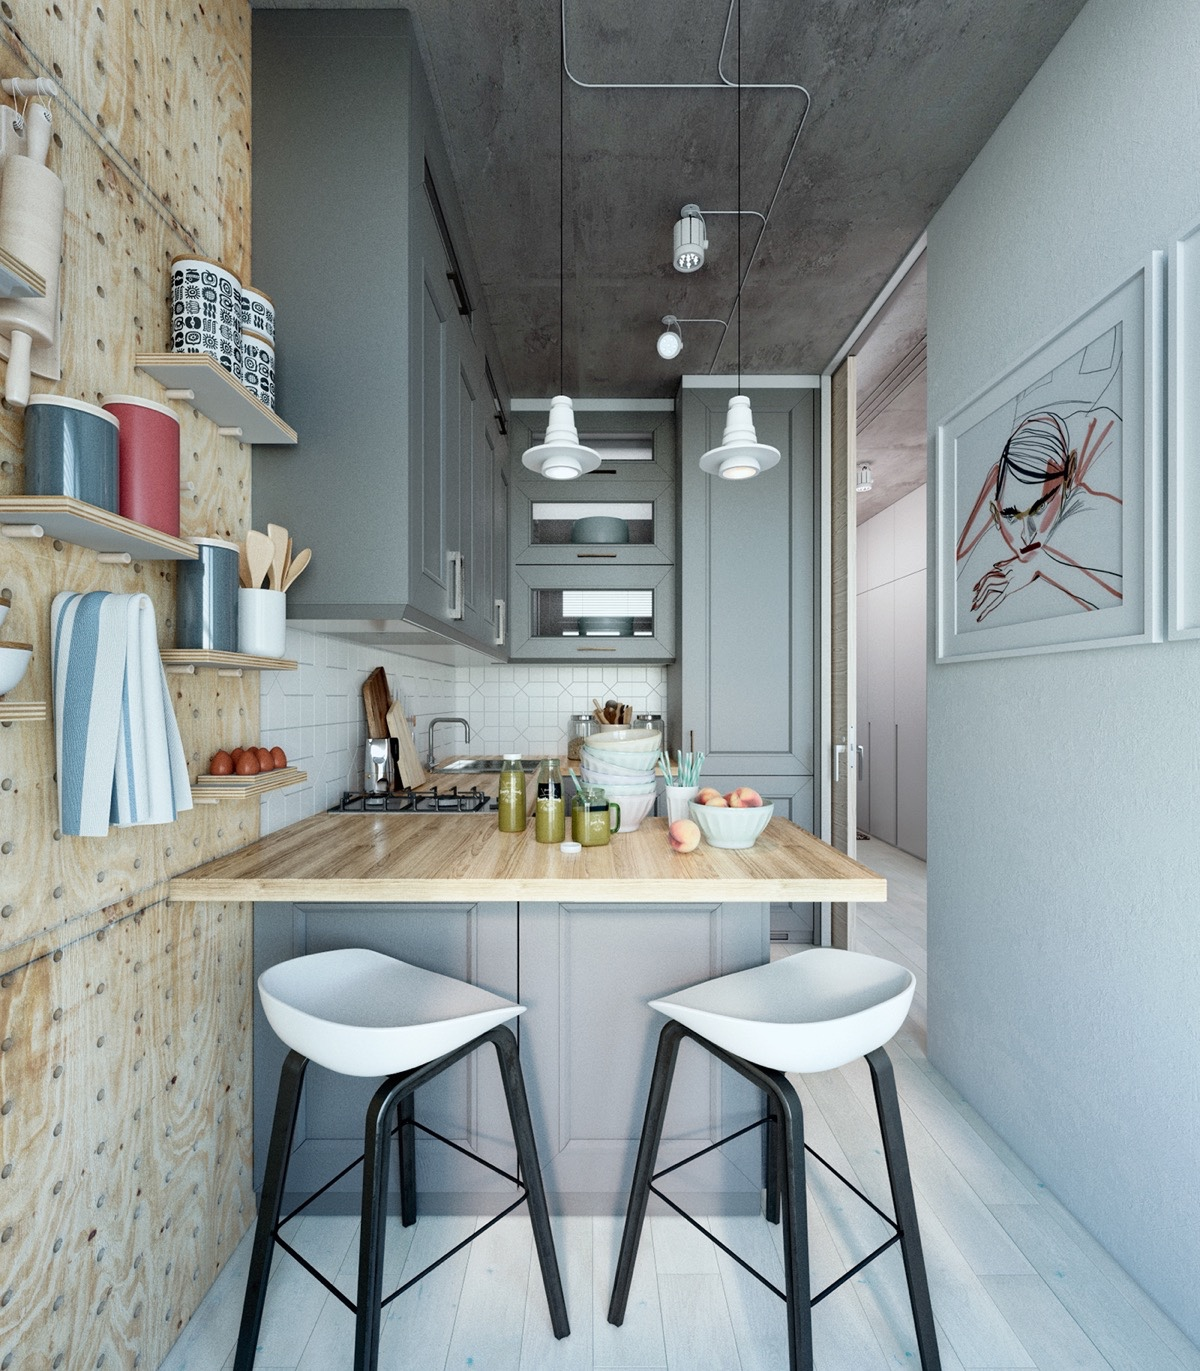 Small Cheap Apartments: Two Takes On The Same Super-Small Apartment